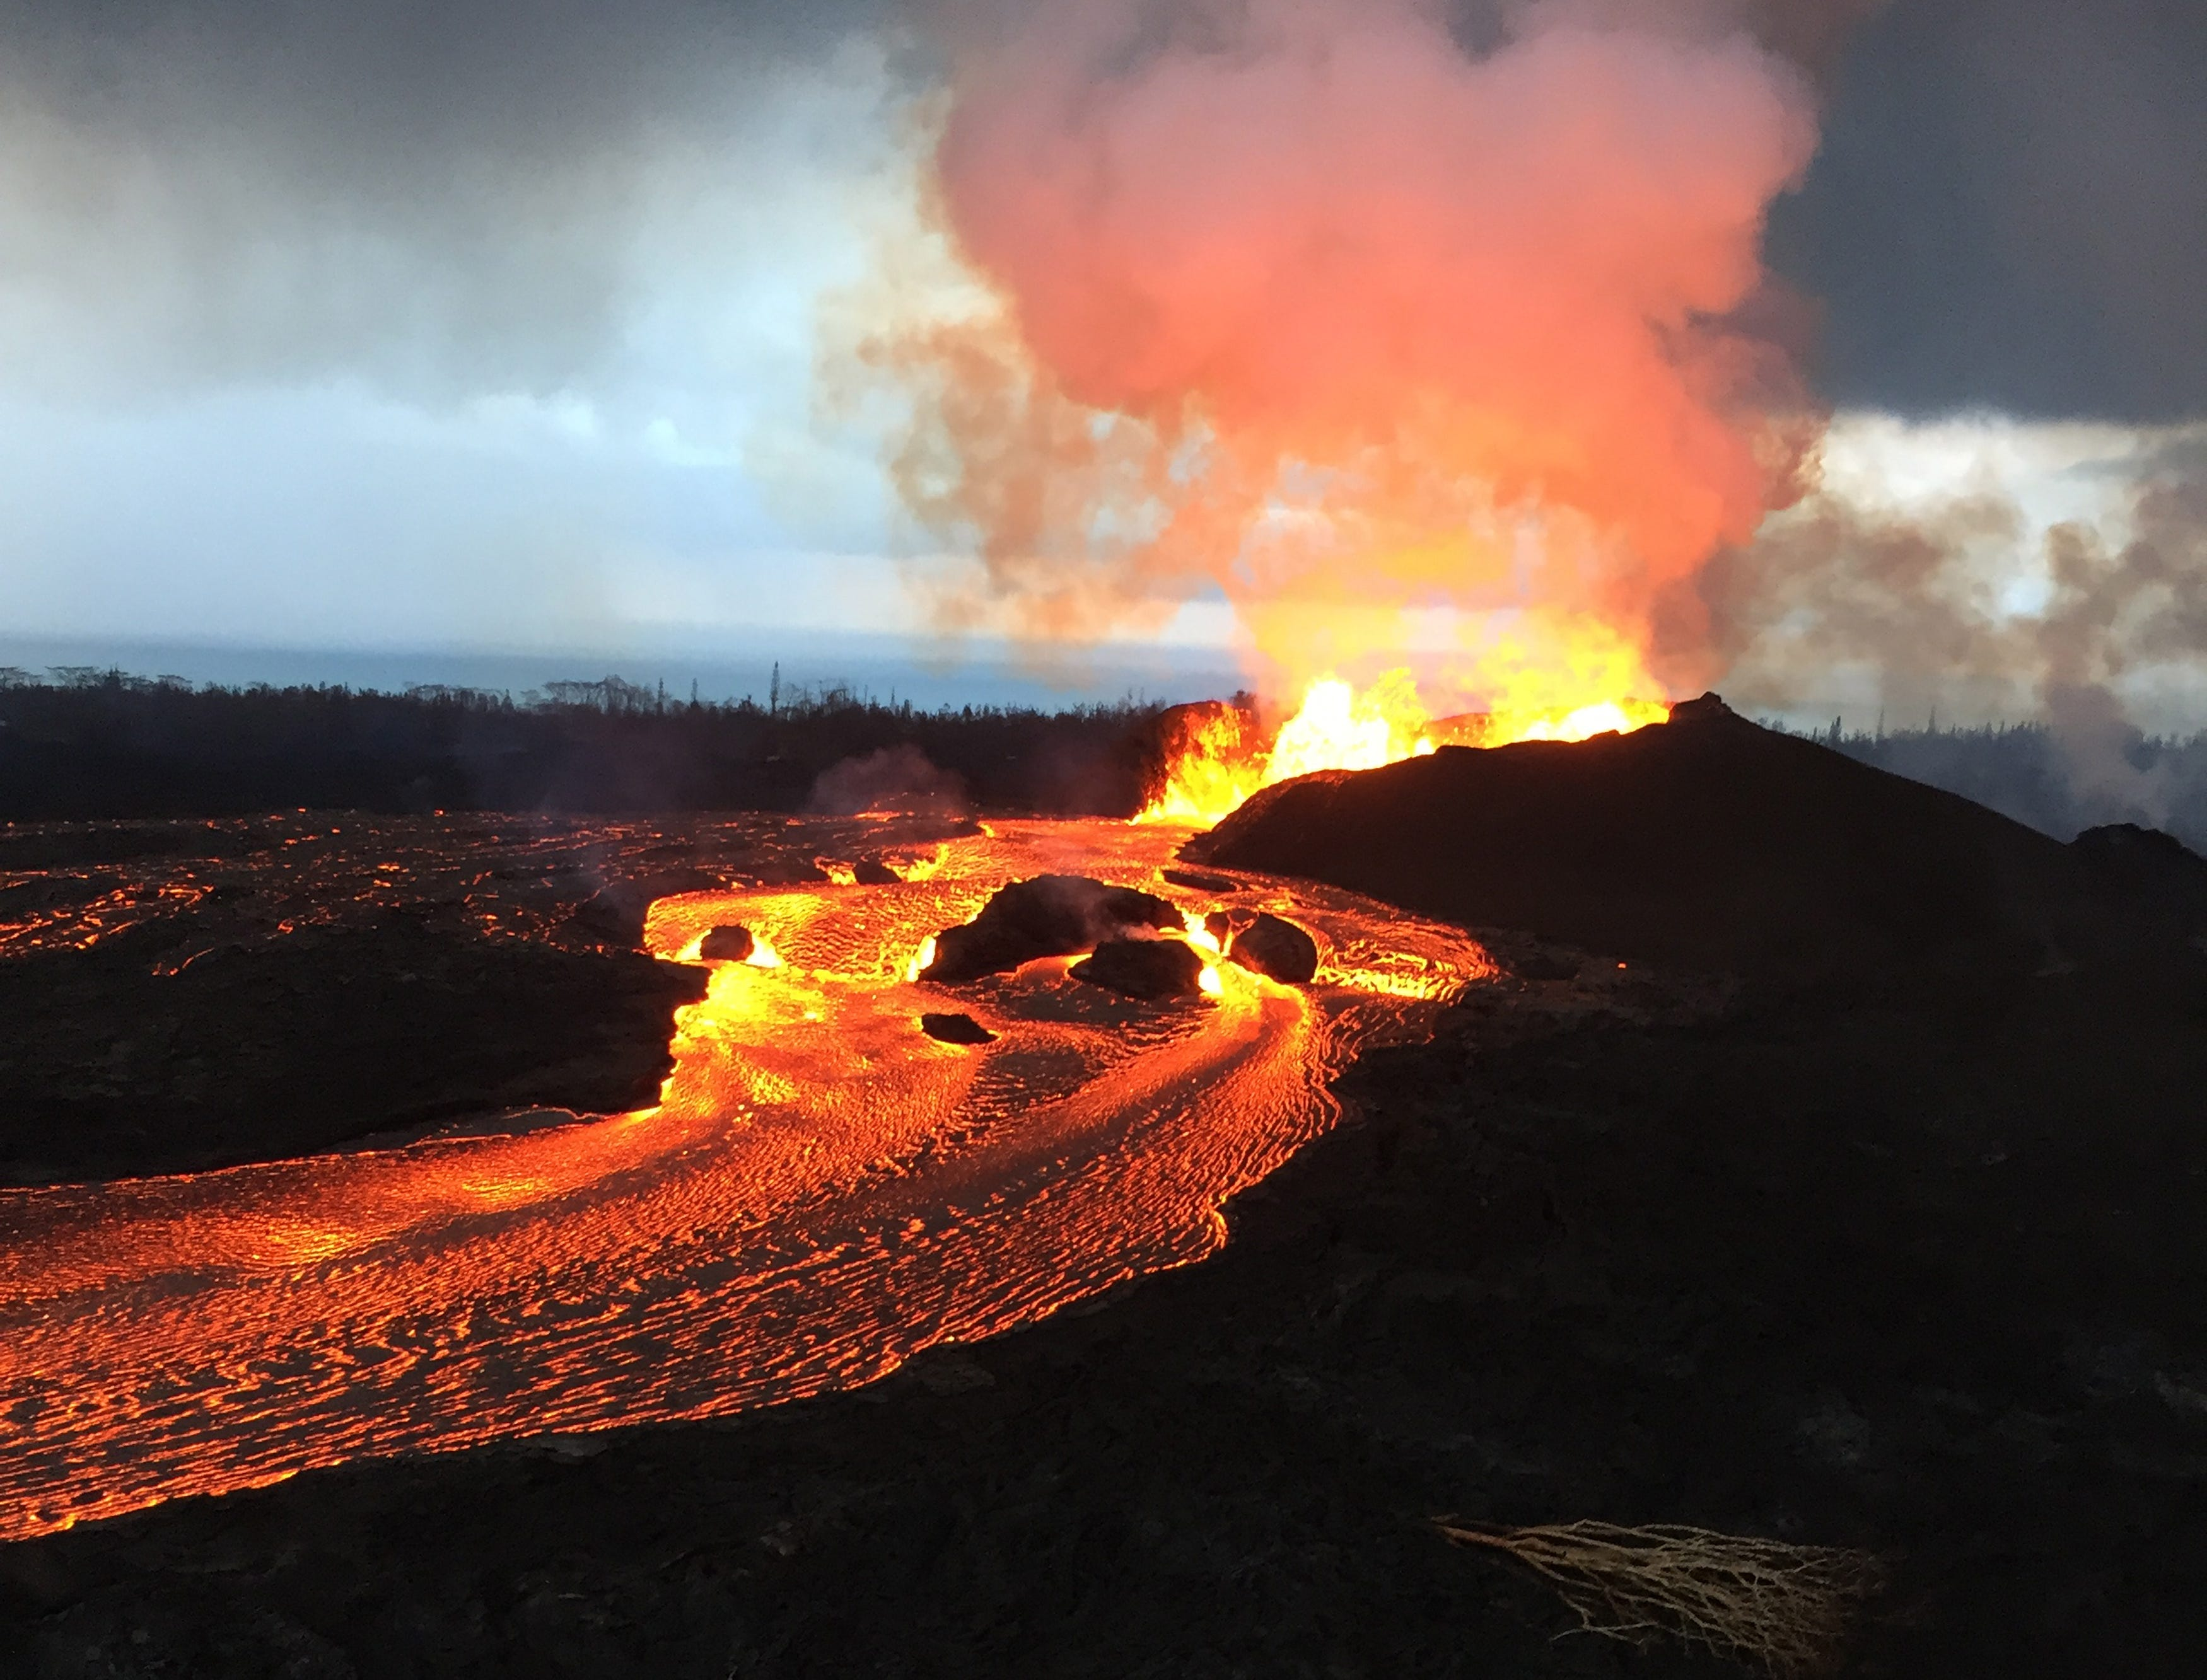 Kilauea volcano eruption is one of the biggest in recent Hawaii history, enough to fill 100,000 pools